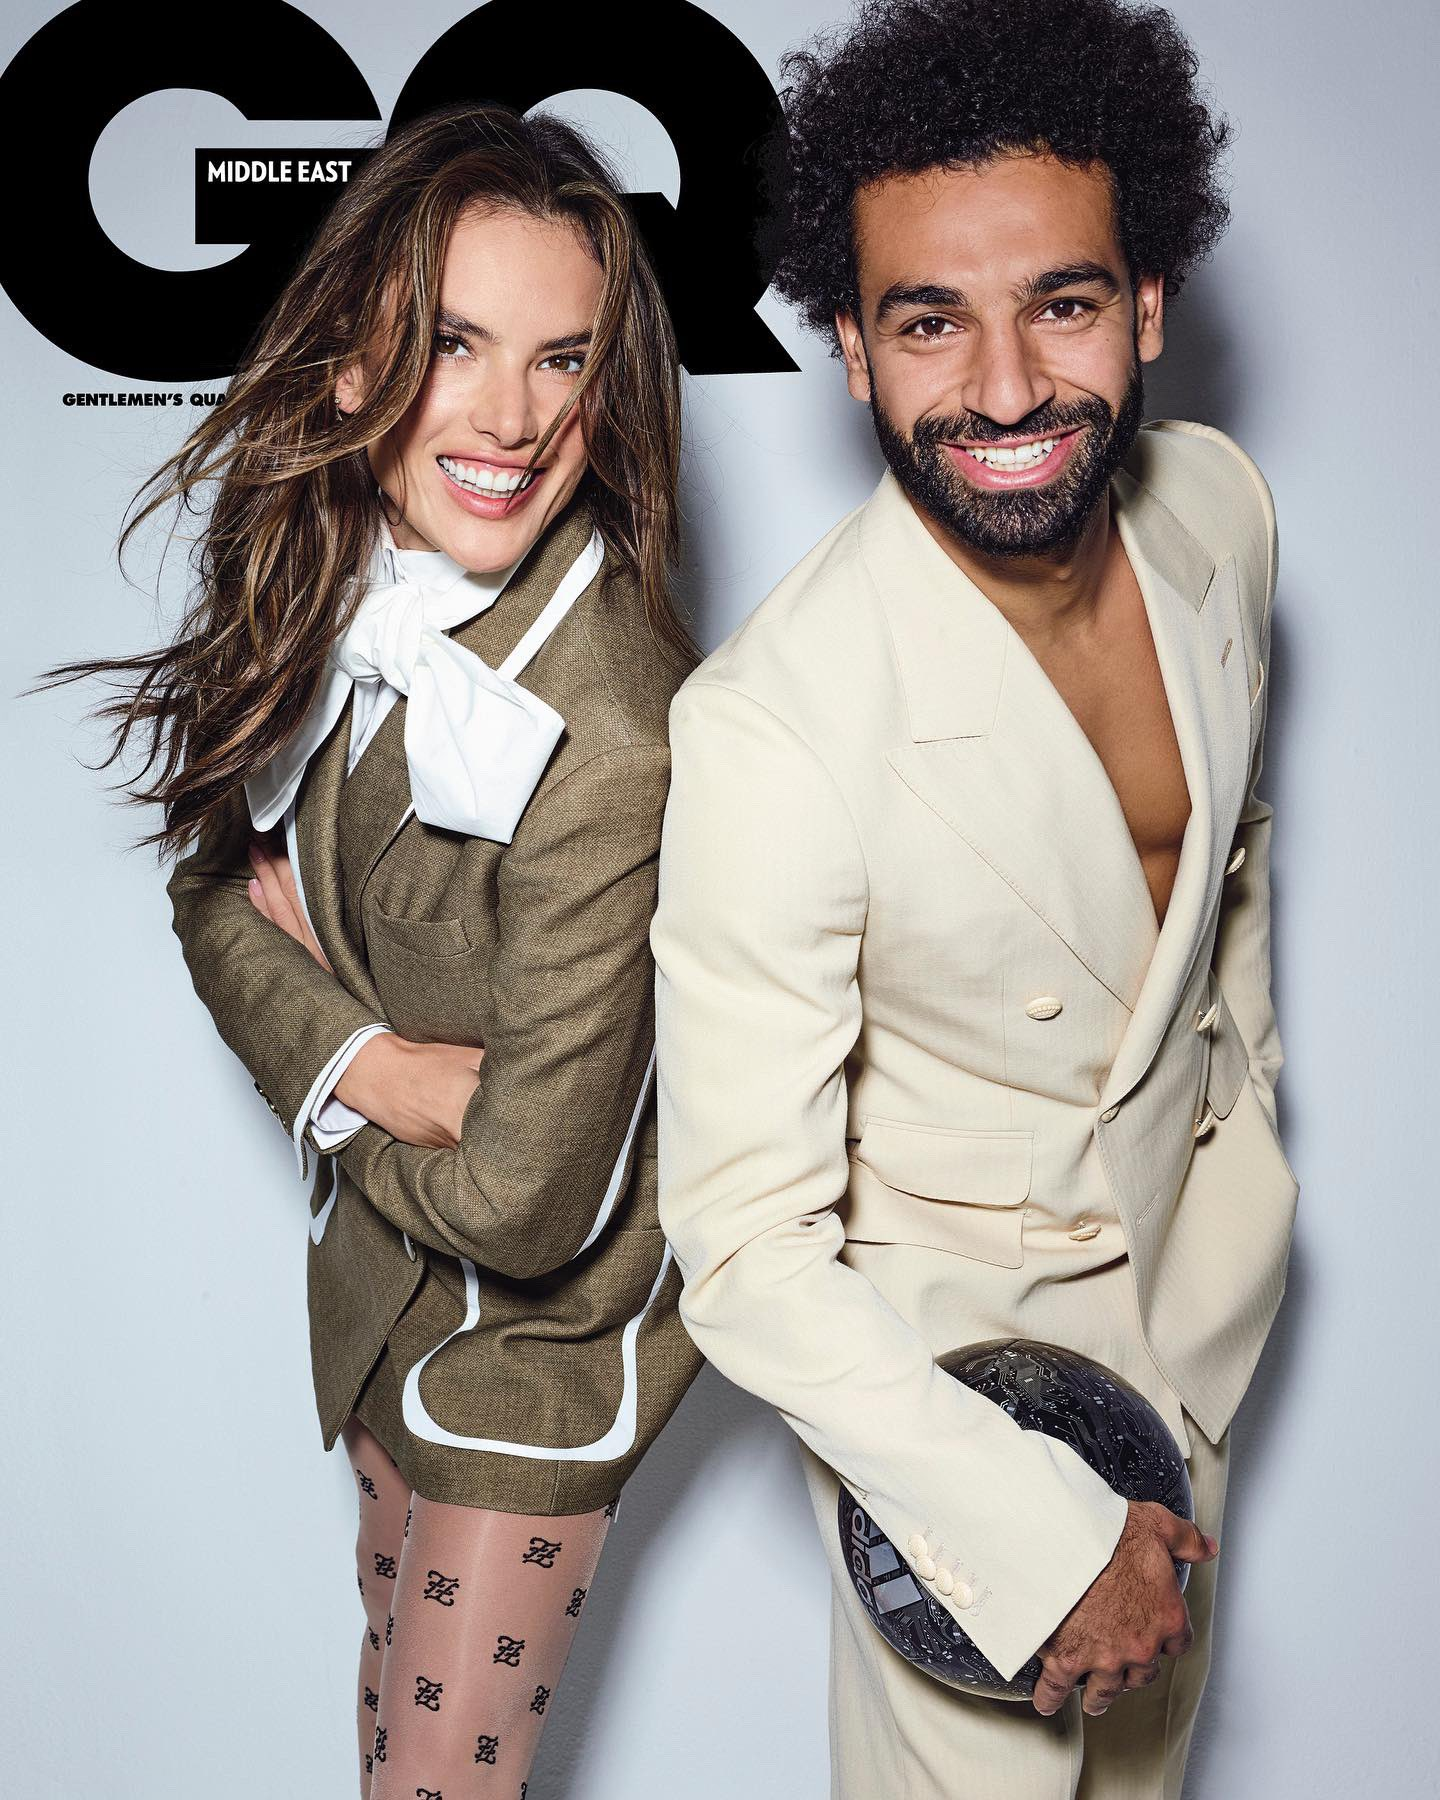 ALESSANDRA WITH MOHAMED SALAH